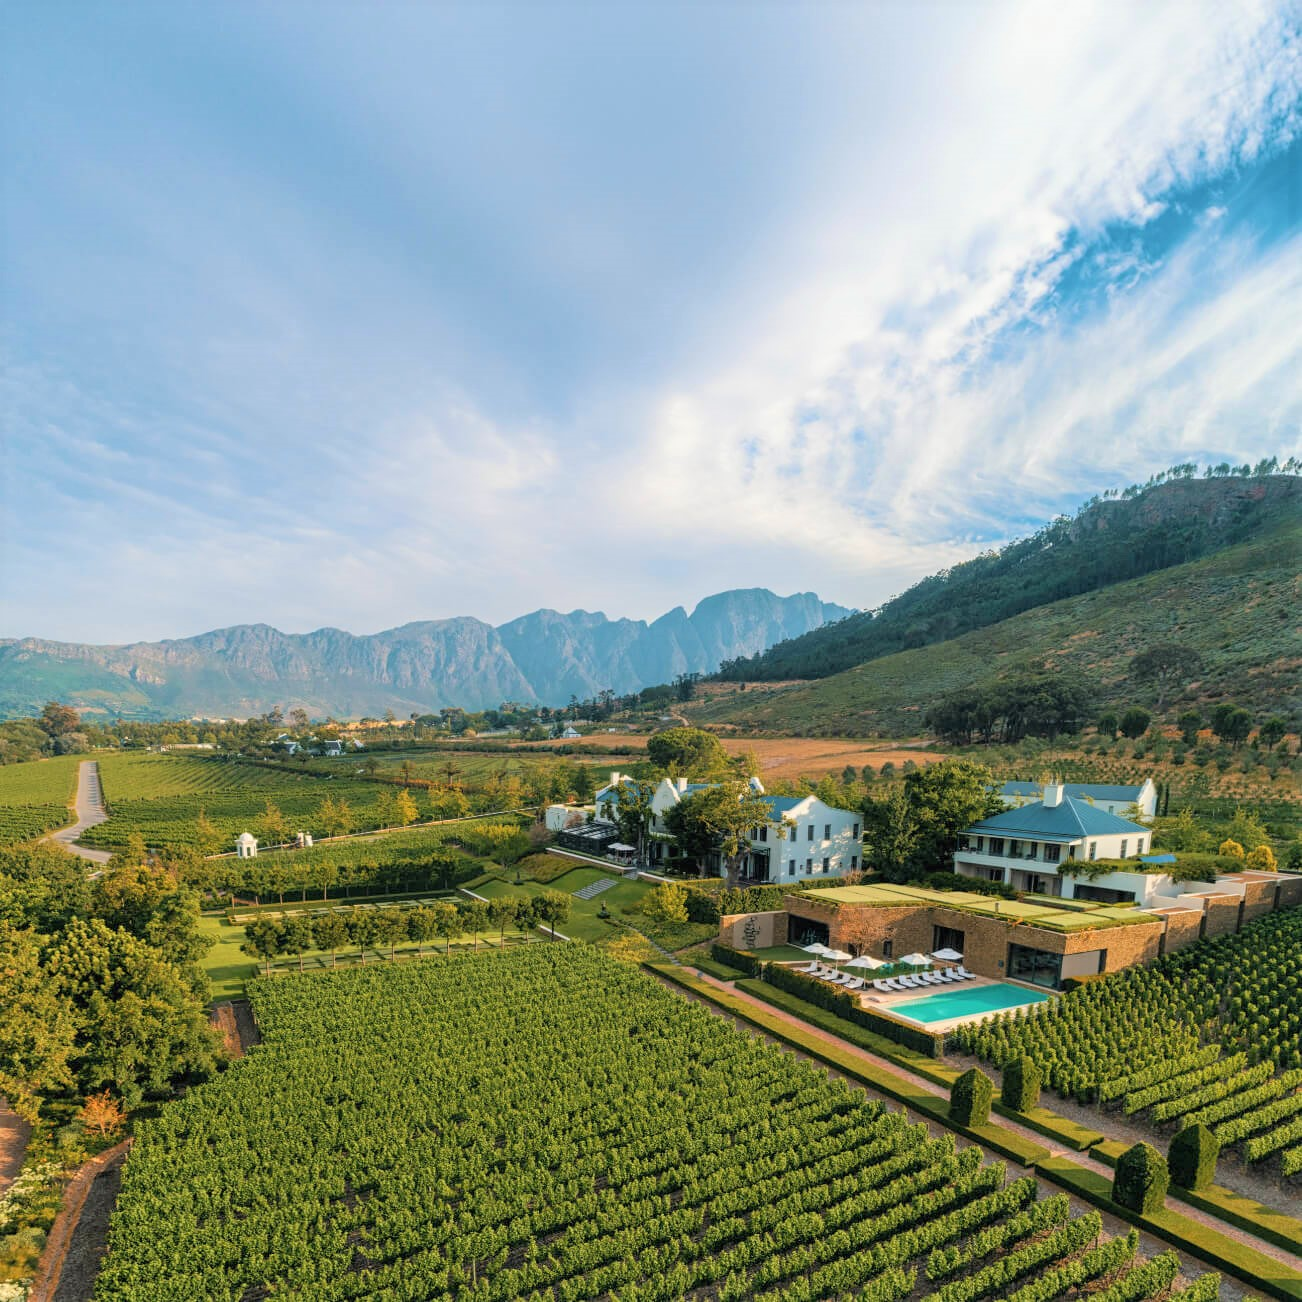 Winery and Spa Resort of the Week: Le Quartier Français